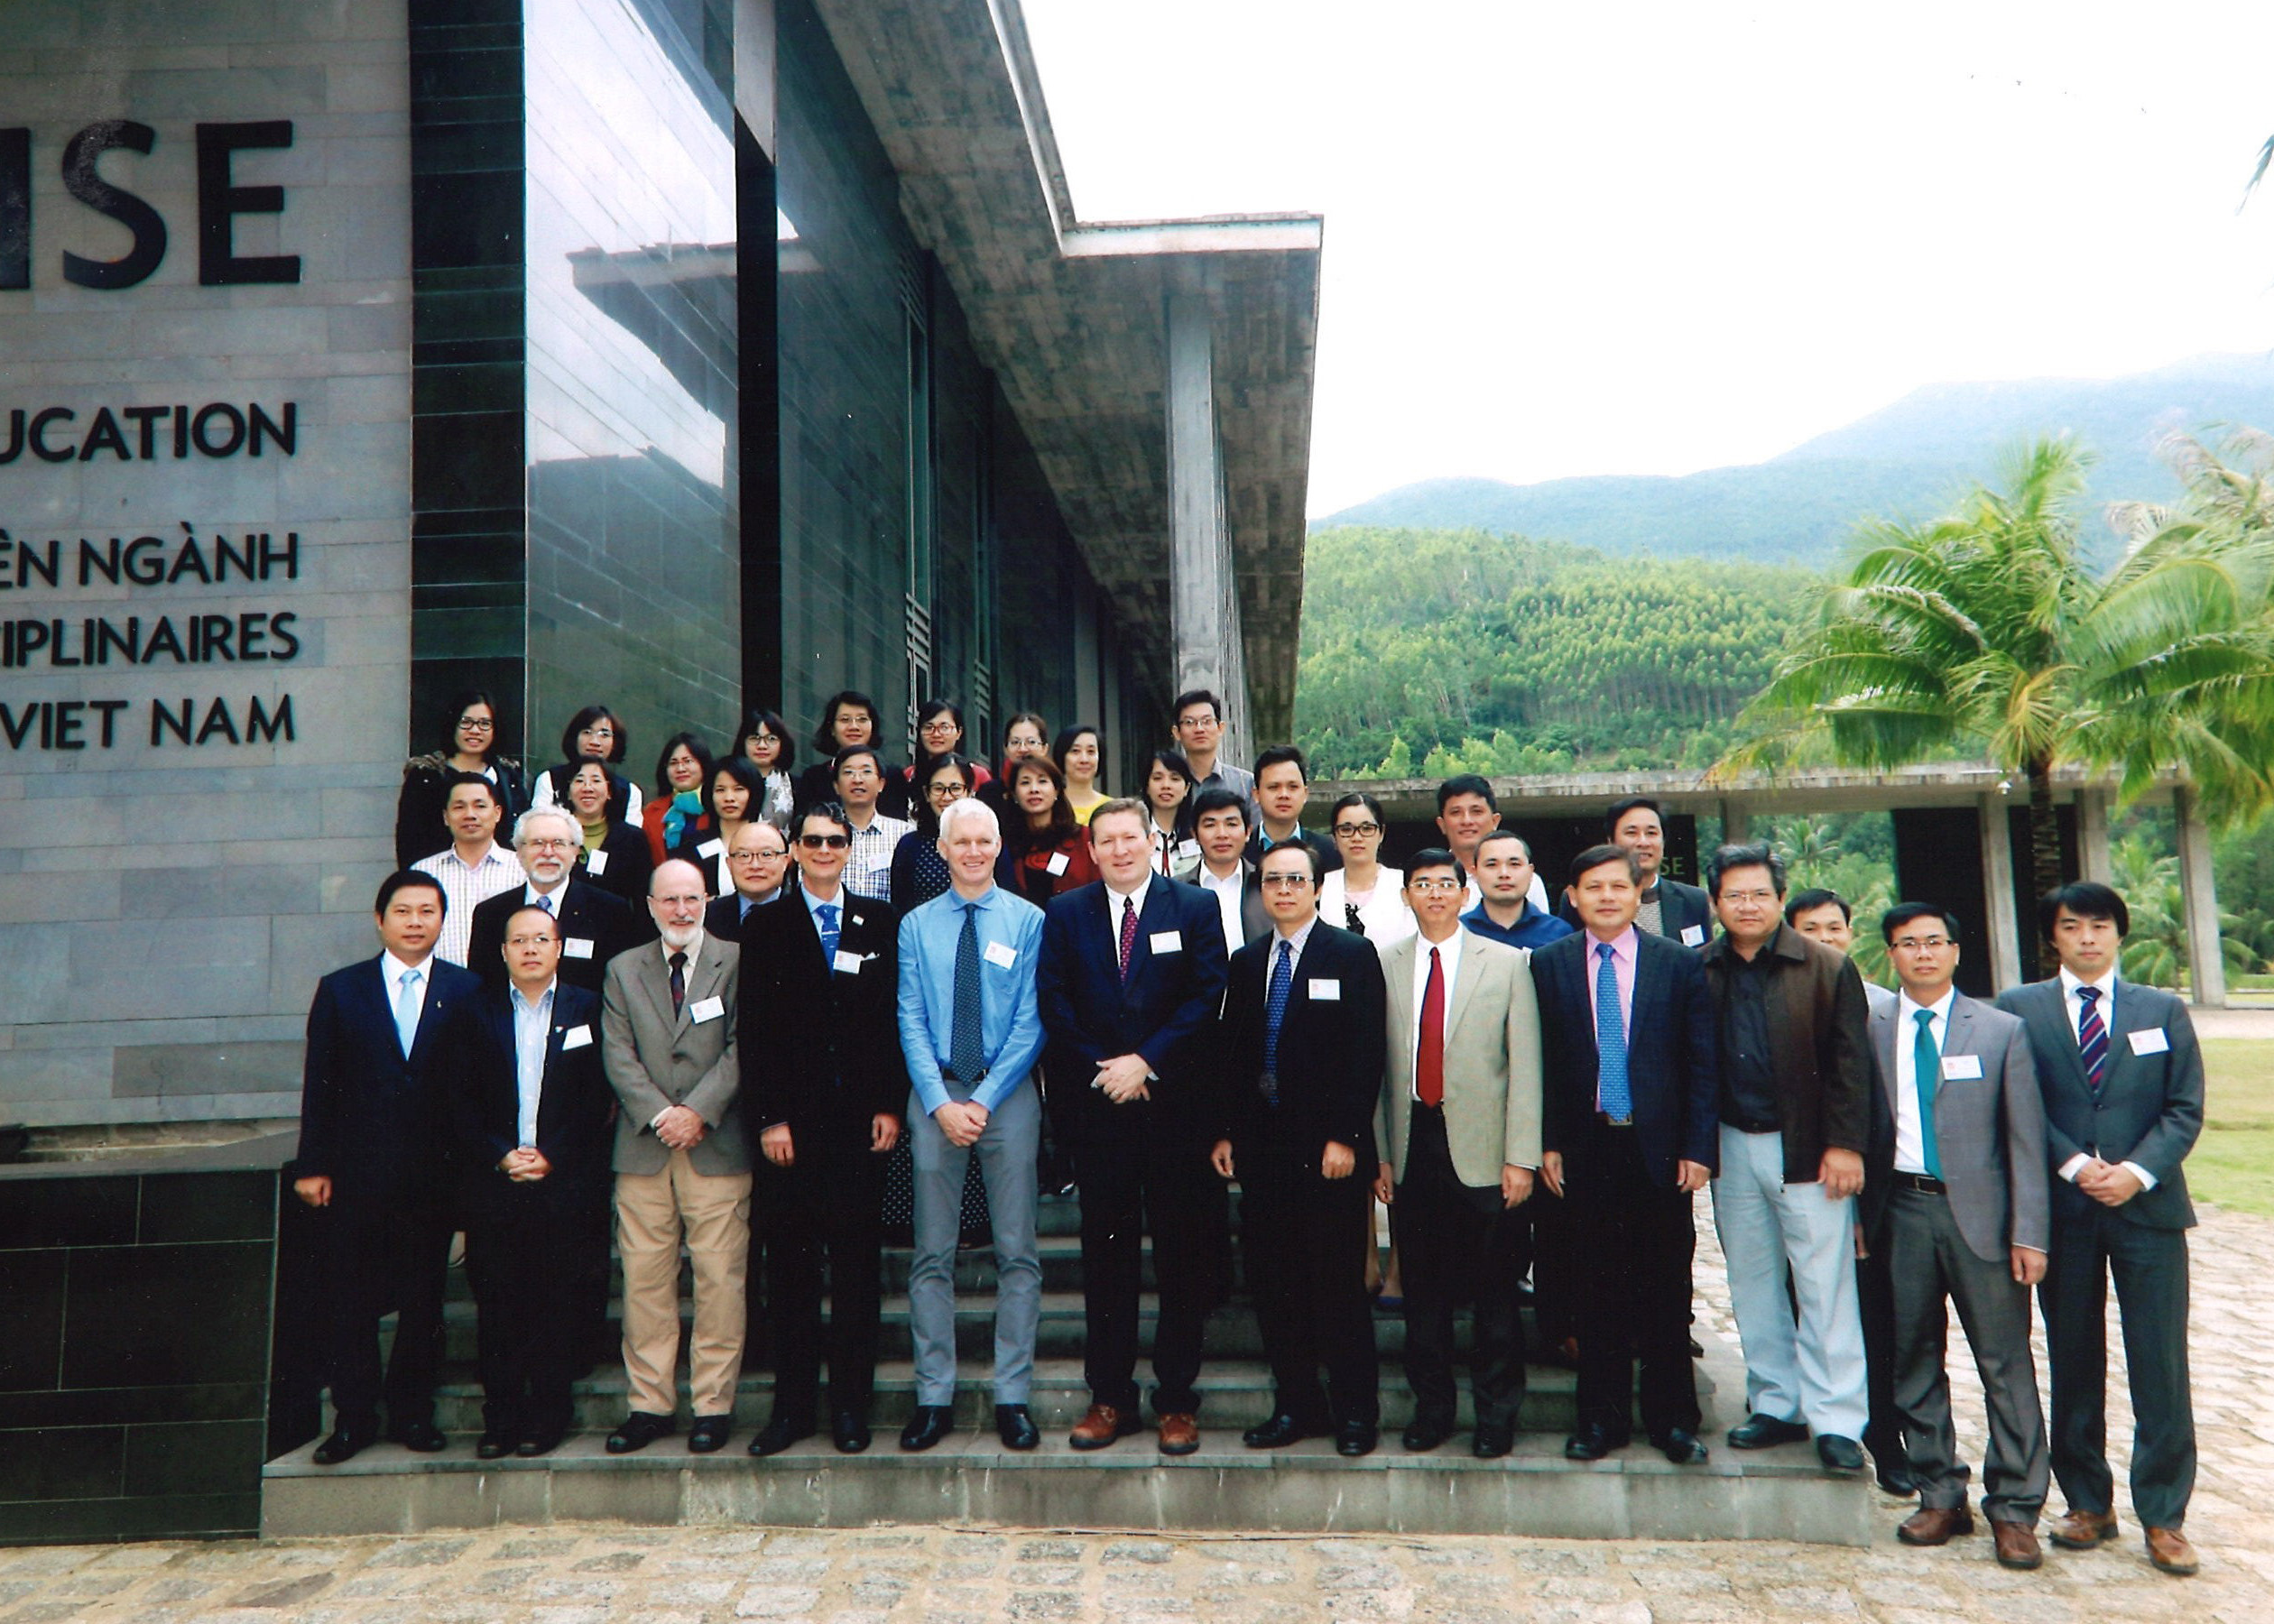 Mickey Taylor, front row, third from left, coordinates the Georgia's Pesticide Safety Education Program (PSEP) through University of Georgia Cooperative Extension. He recently attended a conference in Qui Nhon, Vietnam, where he discussed best practices for implementing pesticide regulation and education programs in emerging economies.